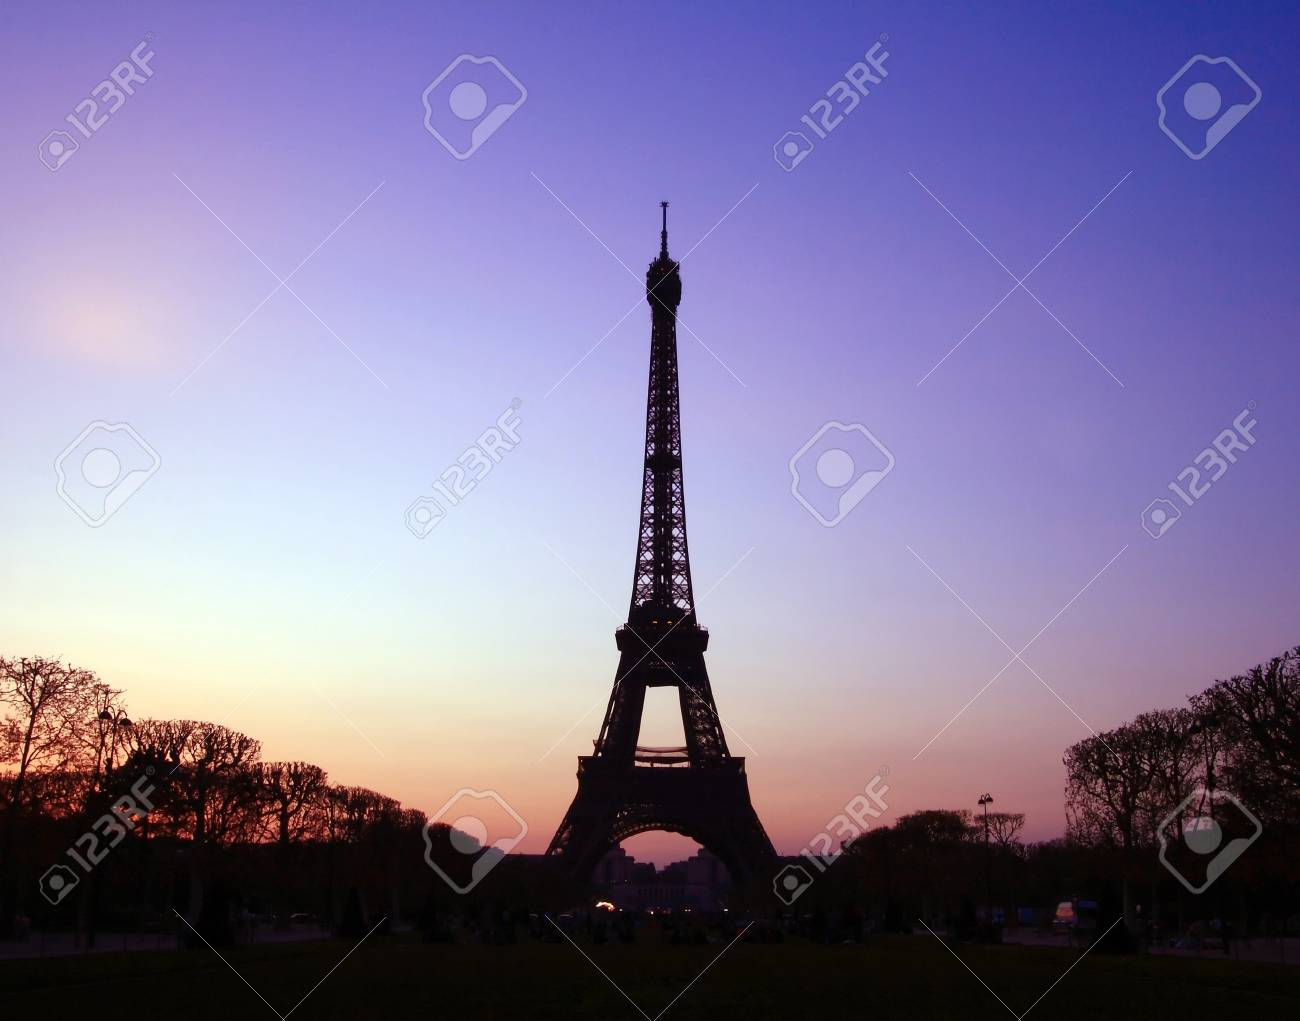 Silhouette of Eiffel Tower in the evening. The Eiffel tower is the most visited monument of France. Stock Photo - 8715032